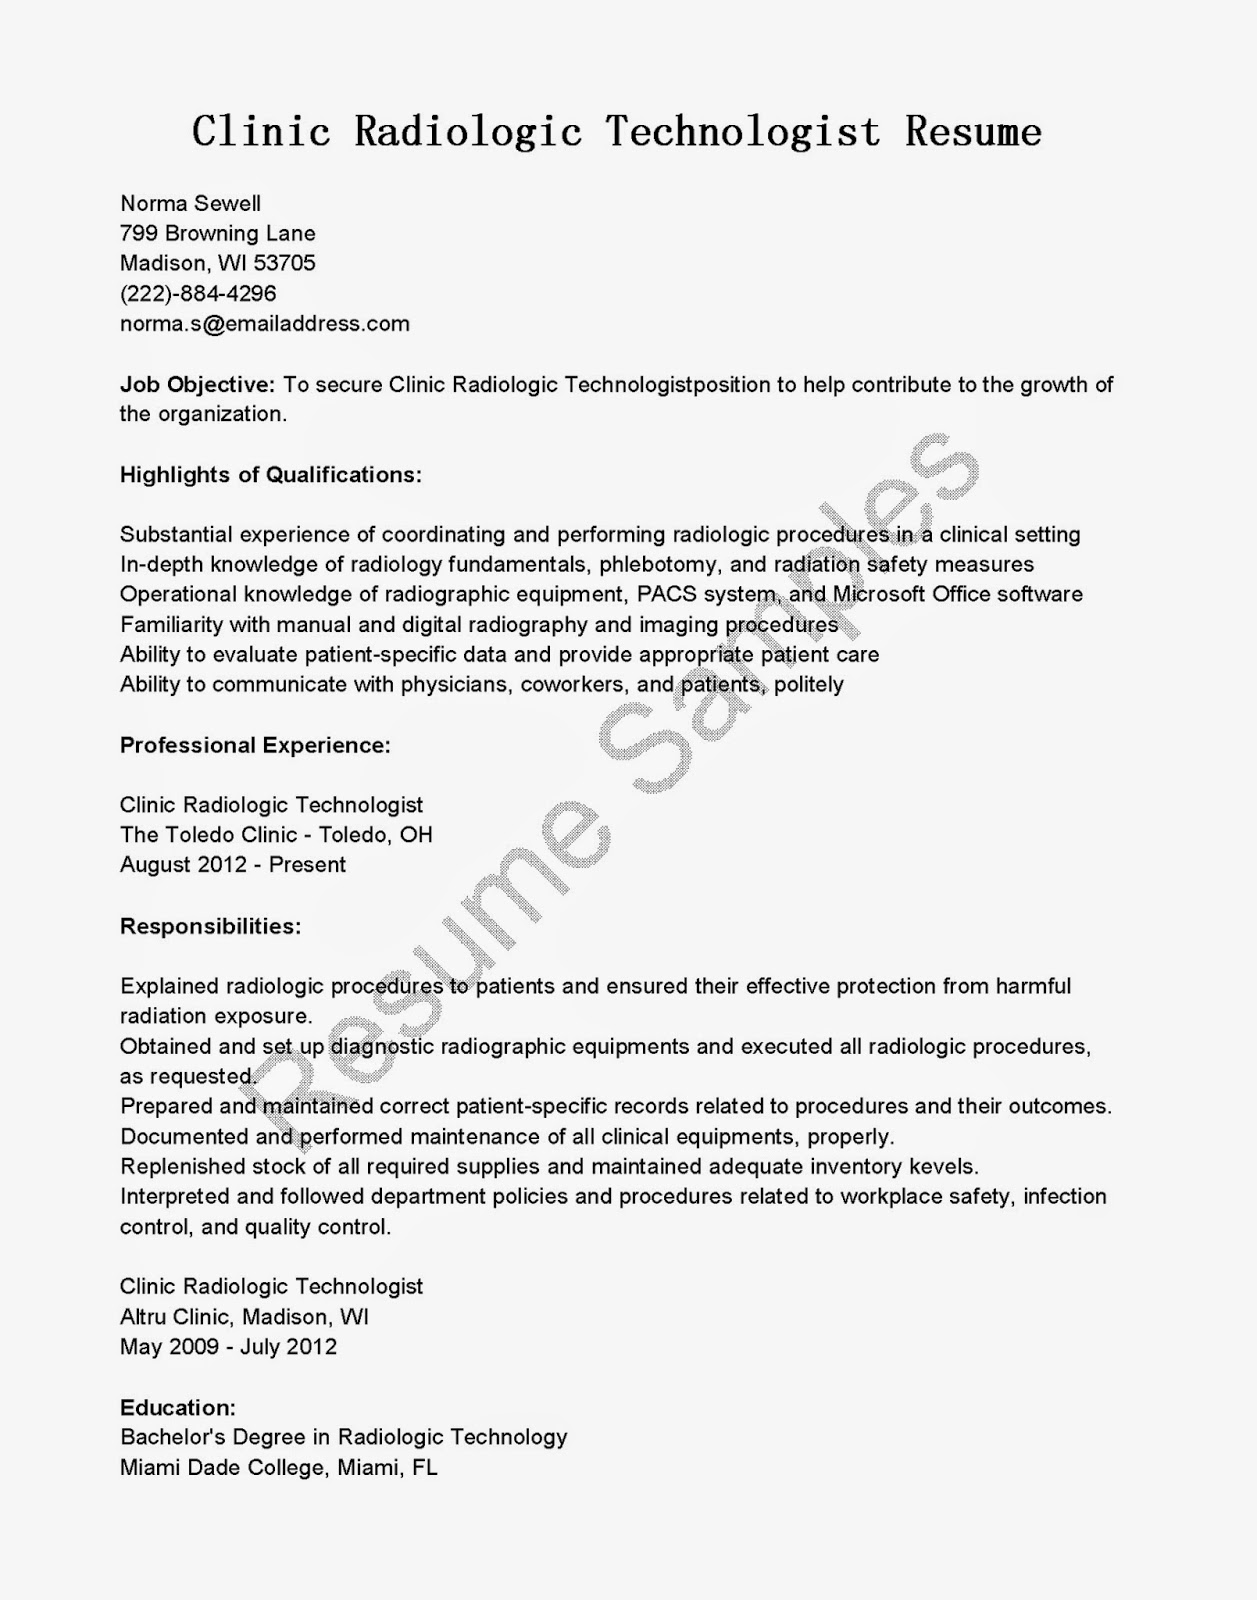 free professional resume examples 2011 resume templates programmer analyst the book of job essay